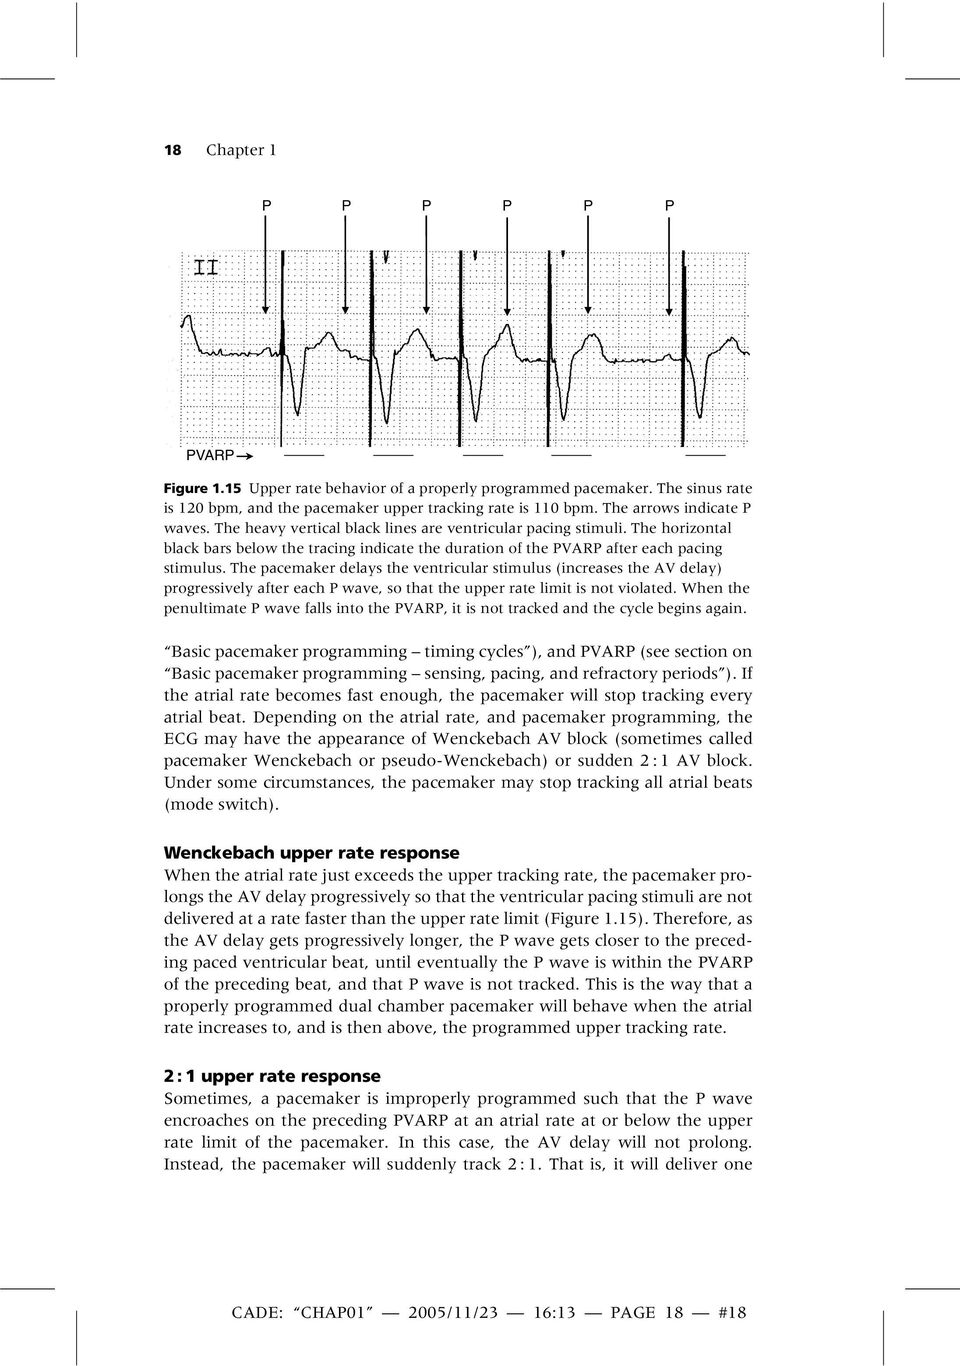 The pacemaker delays the ventricular stimulus (increases the AV delay) progressively after each P wave, so that the upper rate limit is not violated.